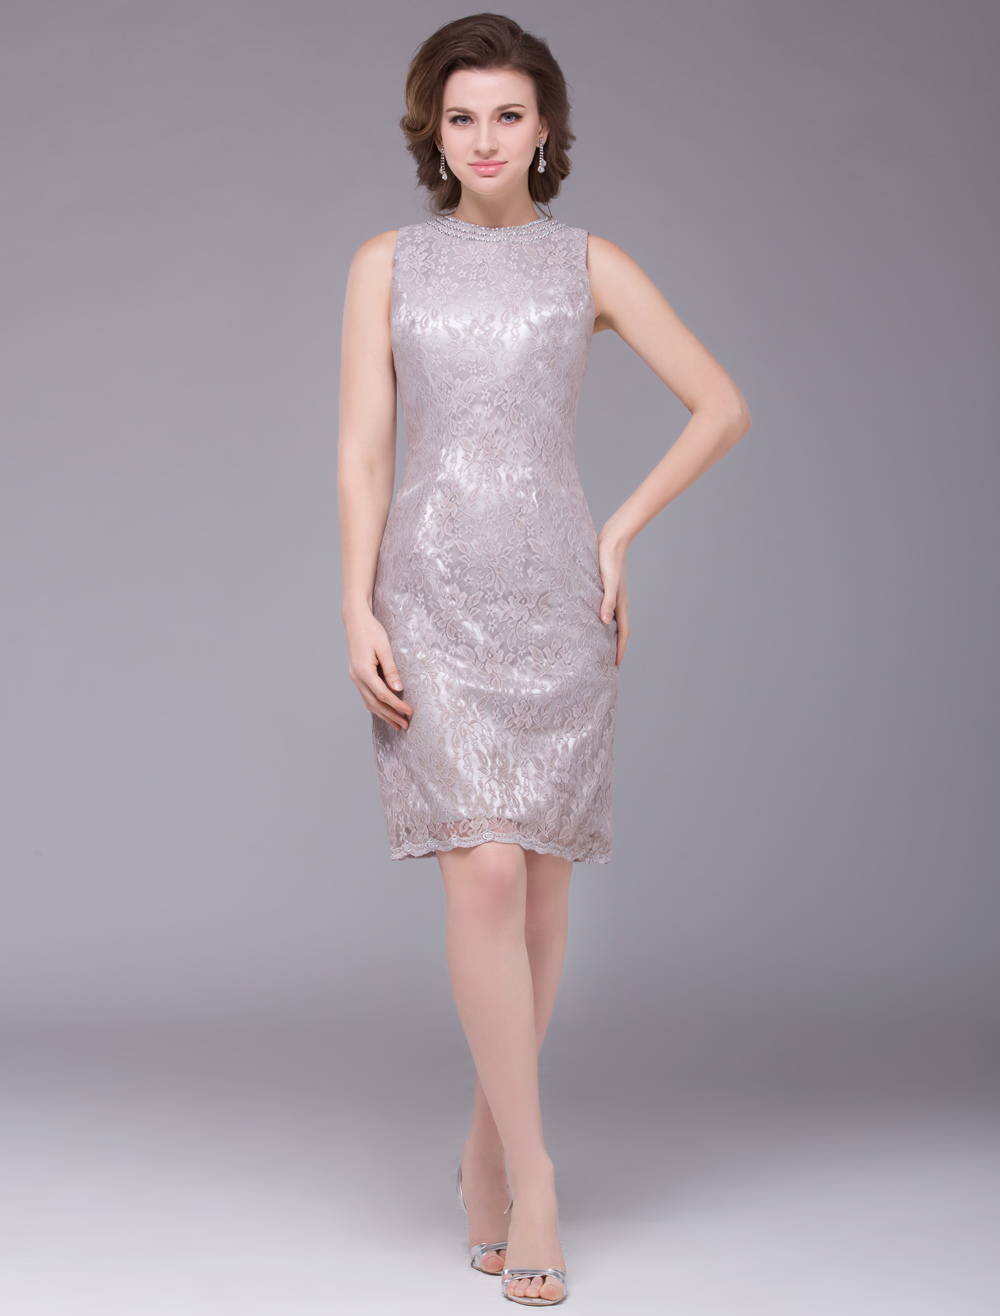 Silver Round Neck Sleeveless Lace Mother of the Bride Dress Wedding Guest Dress photo